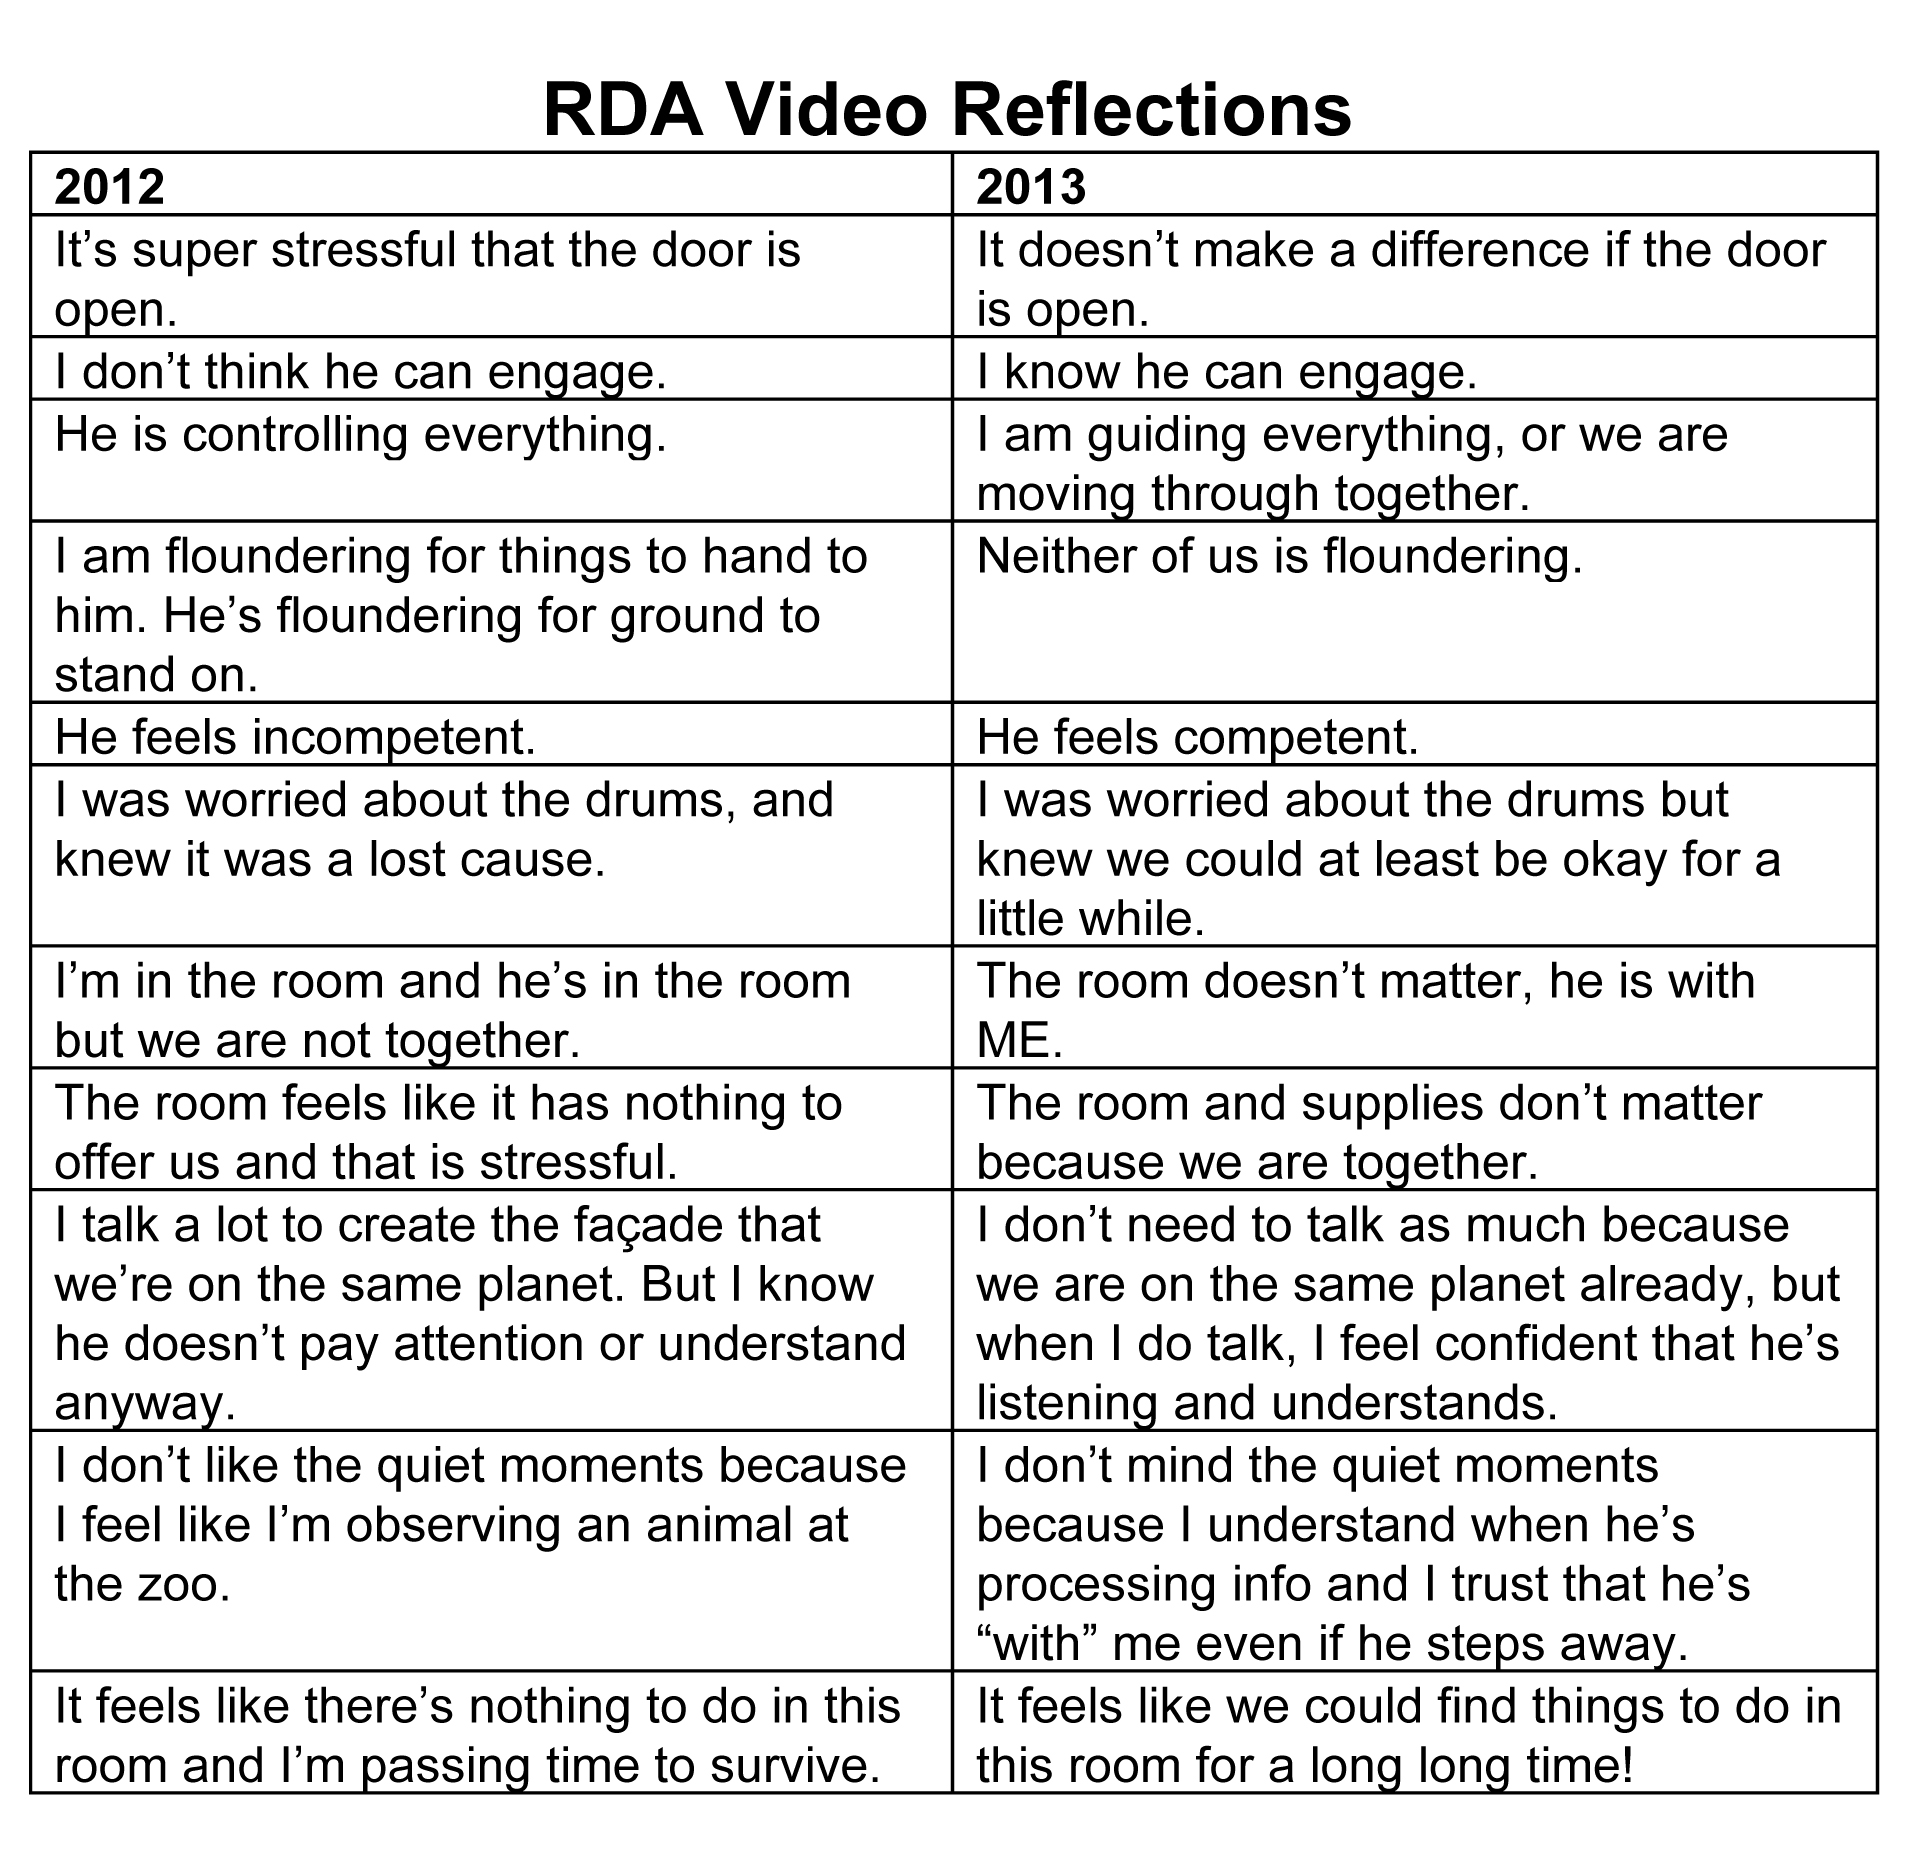 RDAreflection